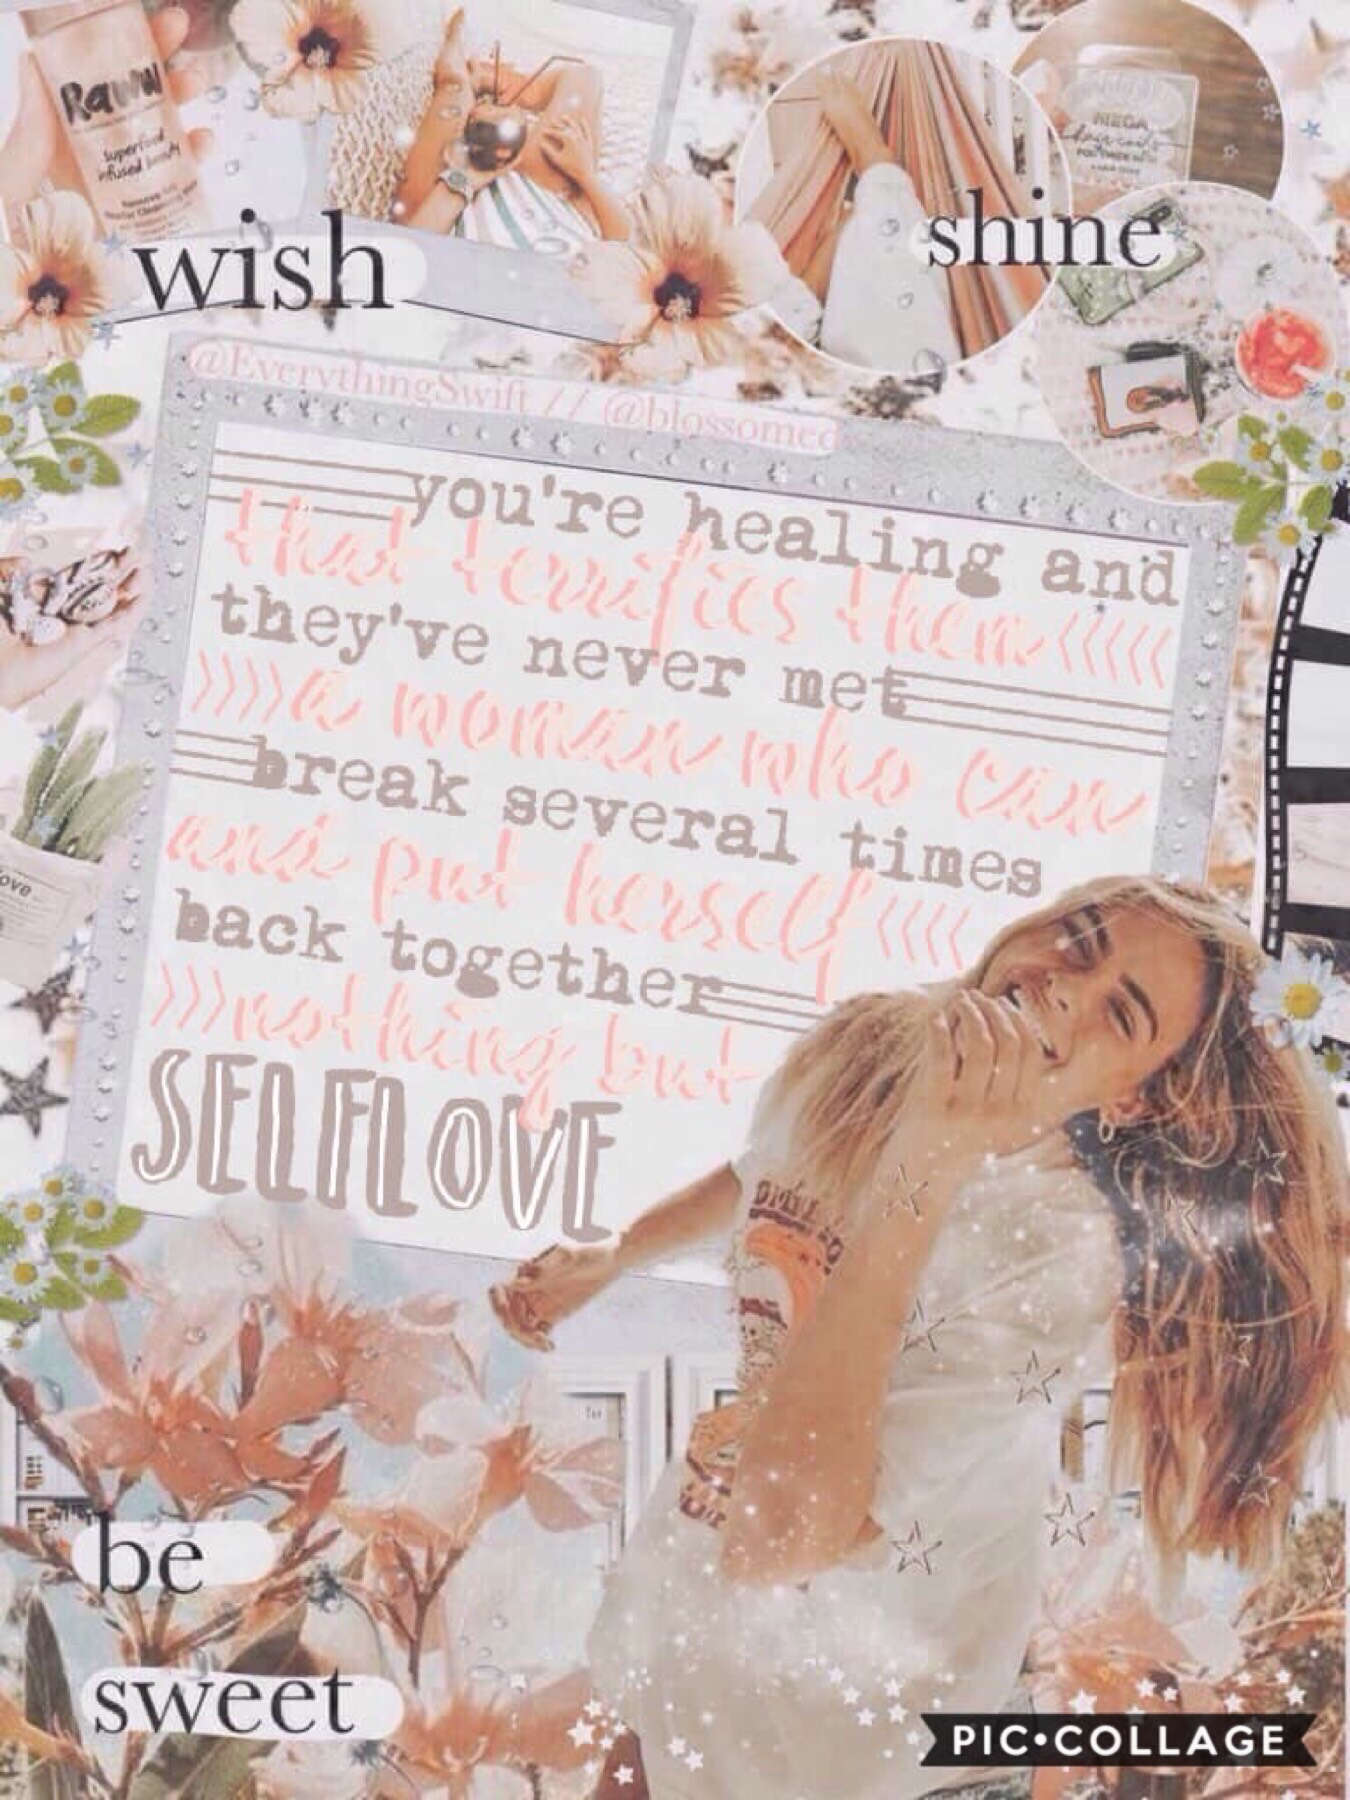 c o l l a b   w i t h   t h e   o n e   &   o n l y . . .  @EverythingSwift, aka Abby !! Abby is so kind and amazing 💖 she's soo good at making collages ⭐️ Abby did the text and I did the BG go follow her NOW !! 🌸💦